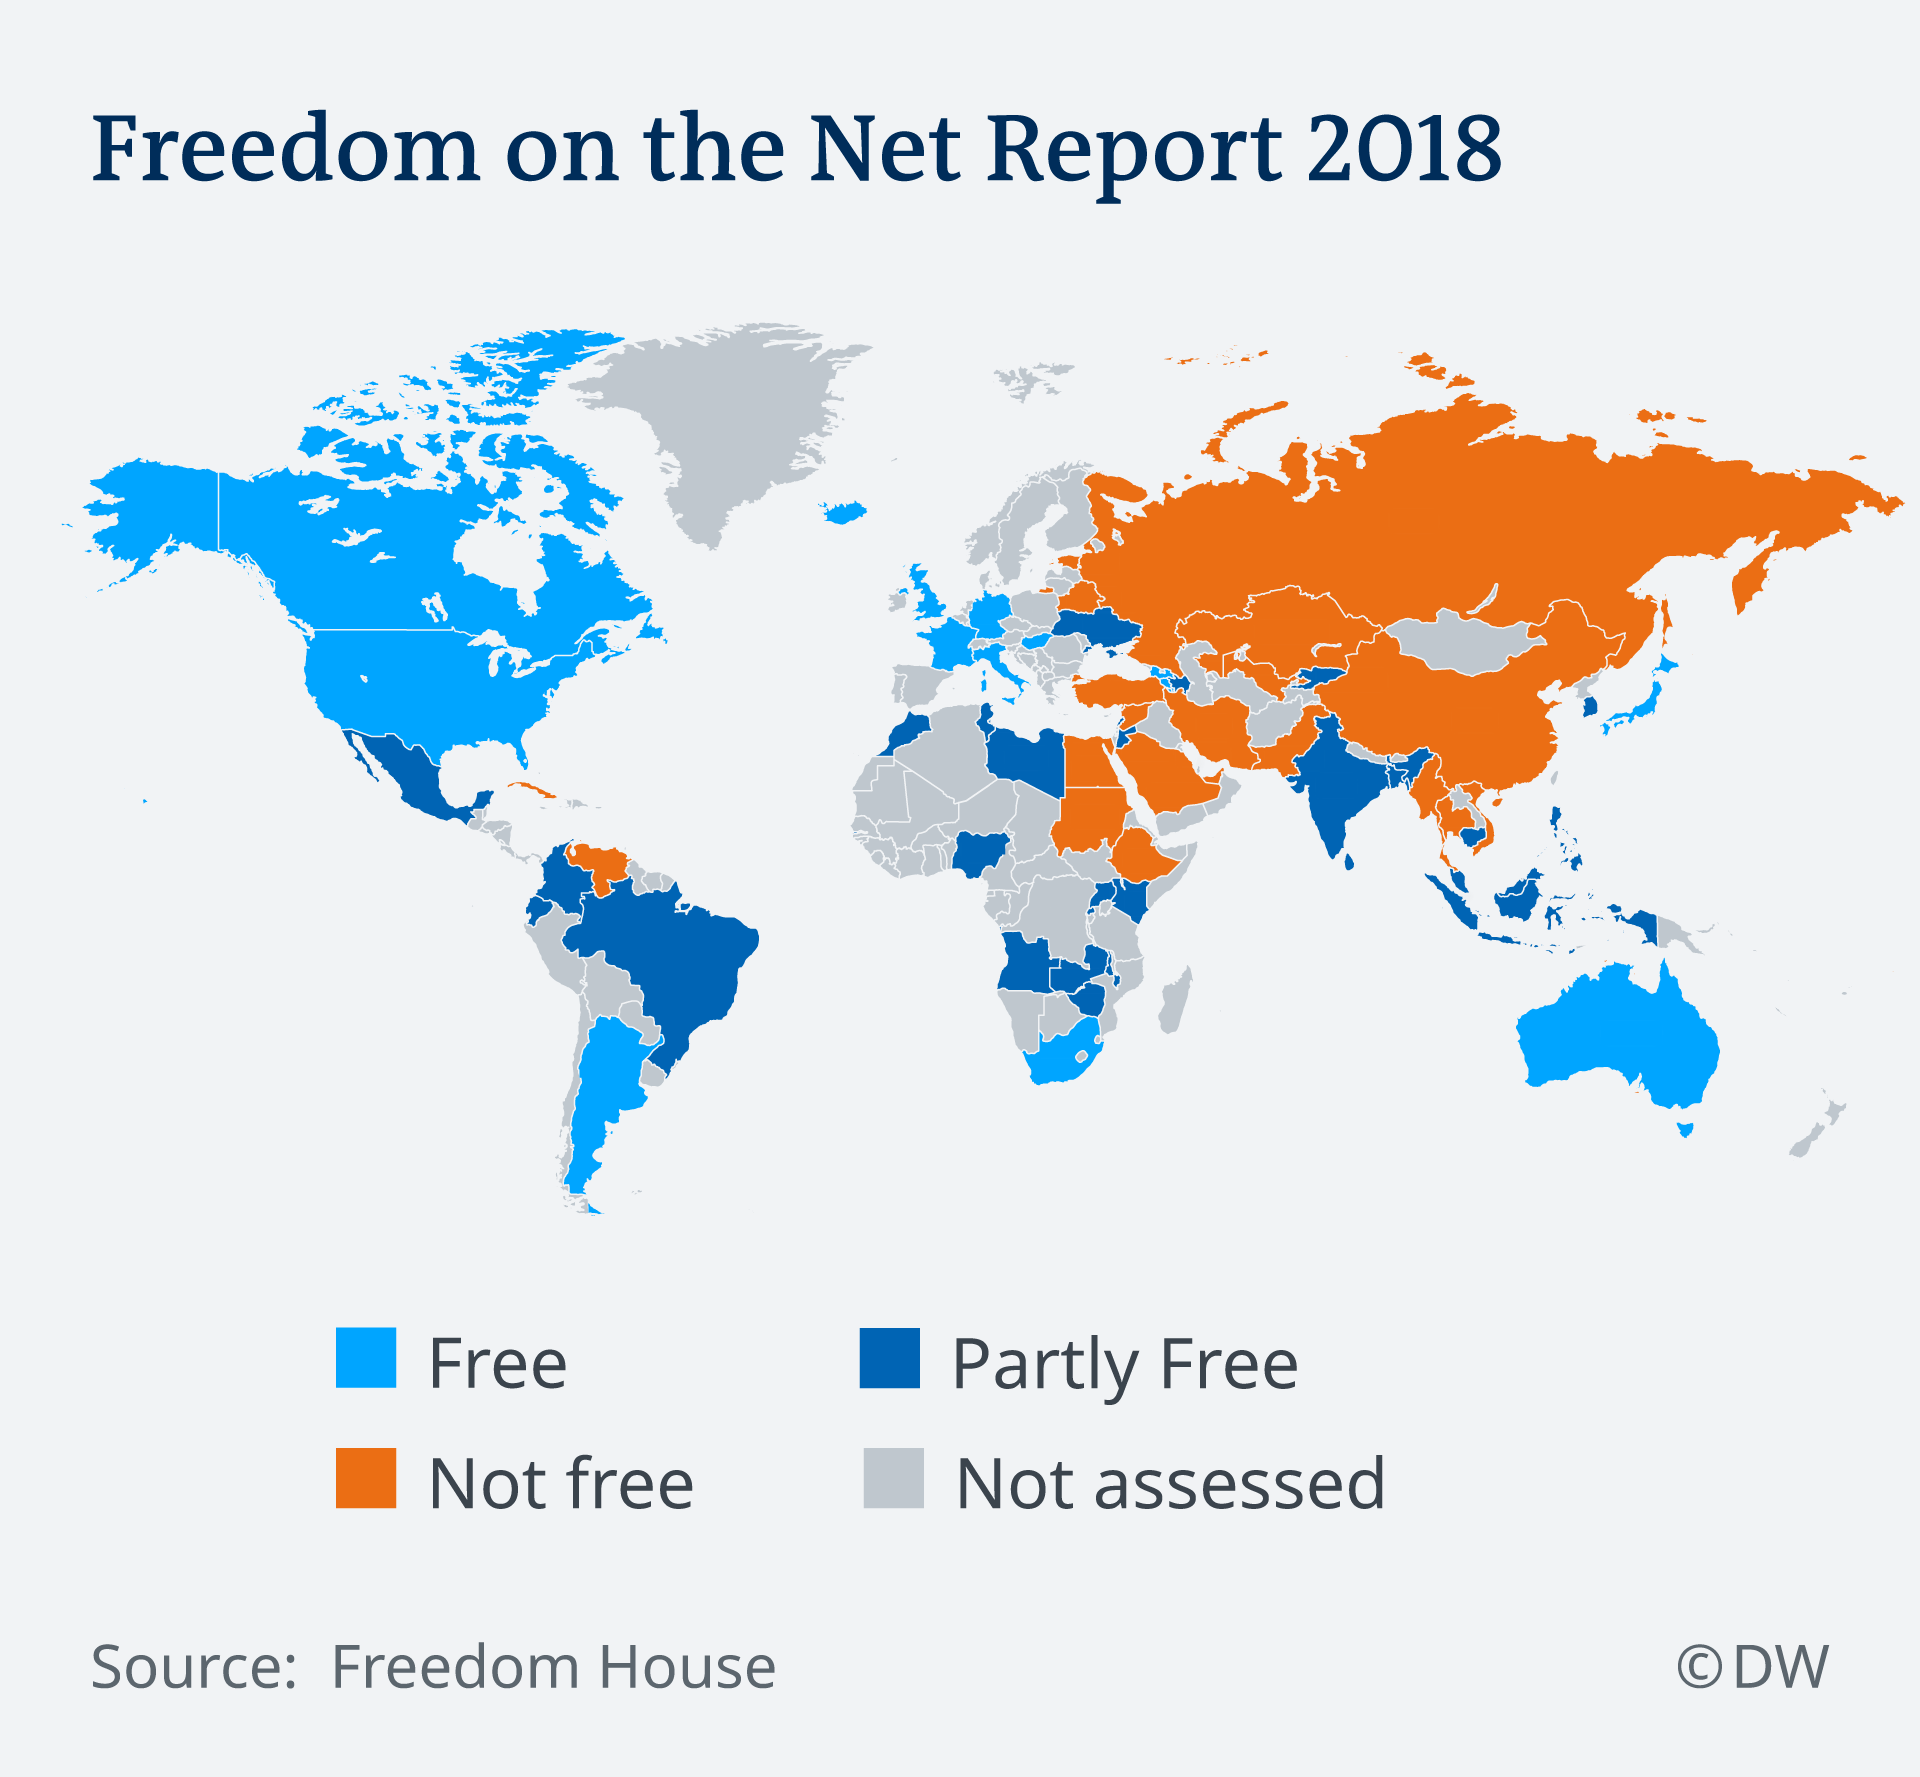 Map of the Freedom on the Net Report 2018